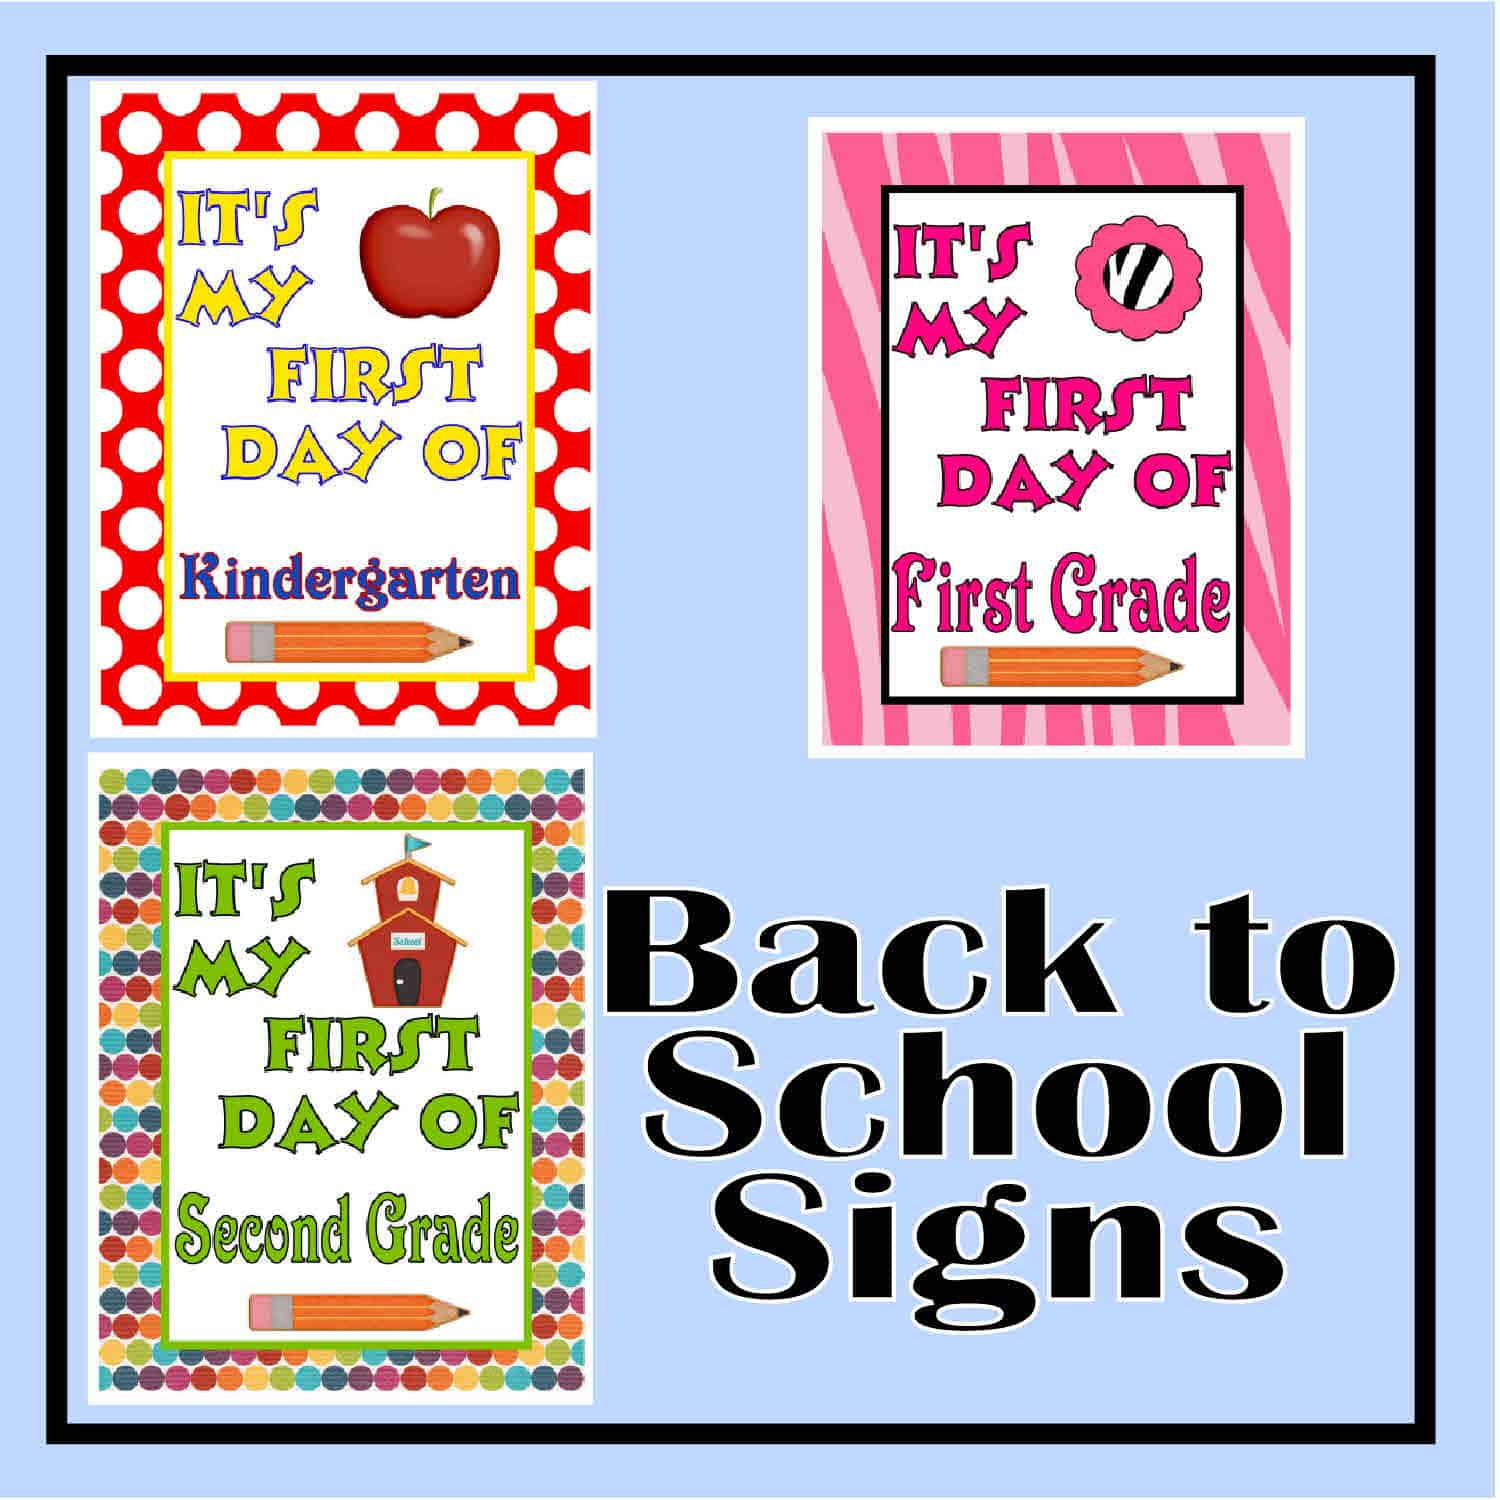 image regarding First Day of Second Grade Printable Sign titled 1st Working day of Higher education Signs or symptoms - The Curriculum Corner 123